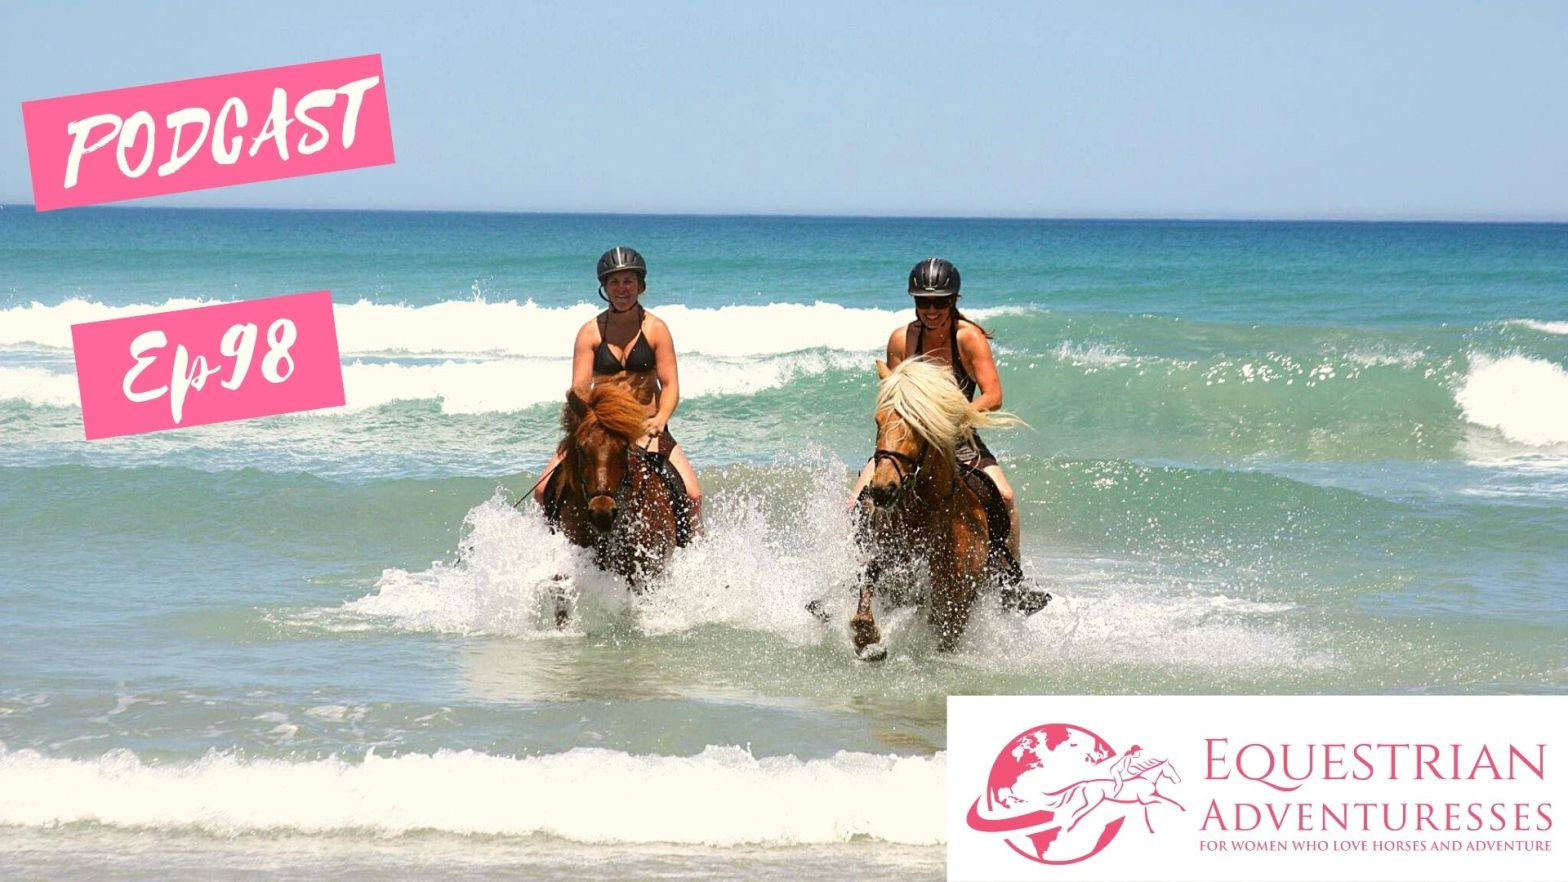 Equestrian Adventuresses Travel and Horse Podcast Ep 98 - From the Far North to Down Under